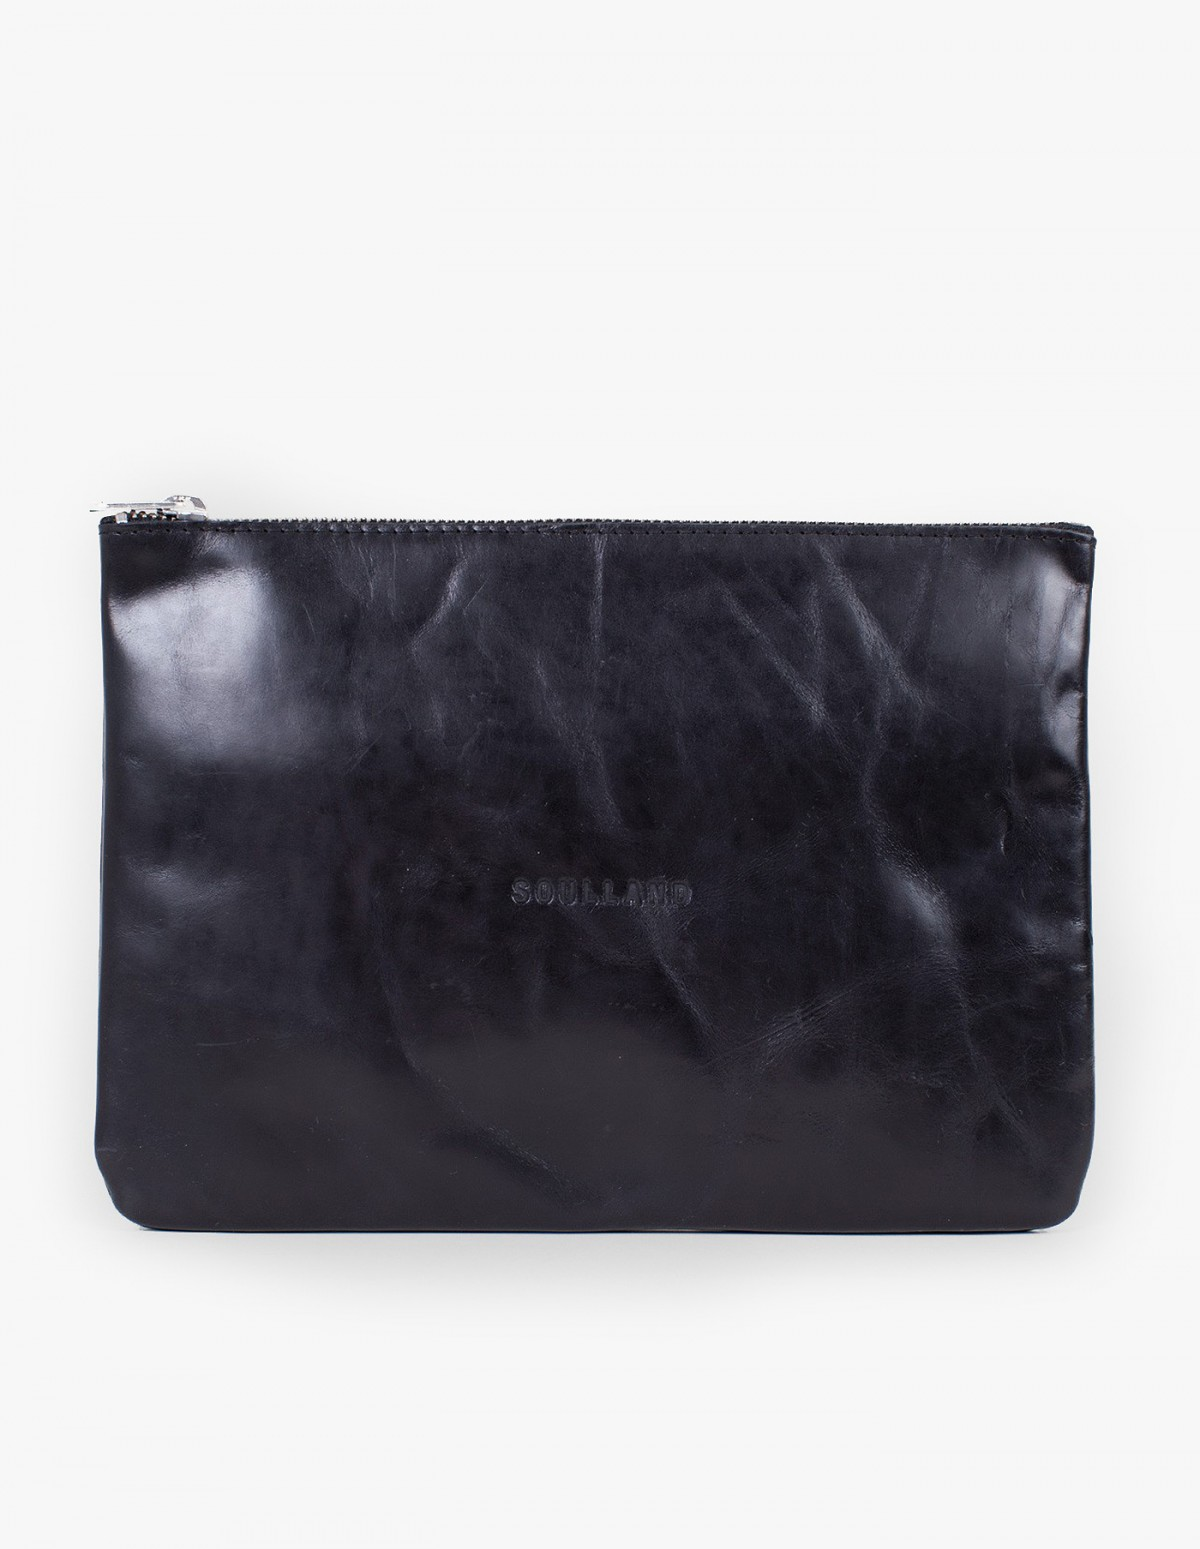 Soulland Magdalene Big Wallet in Black